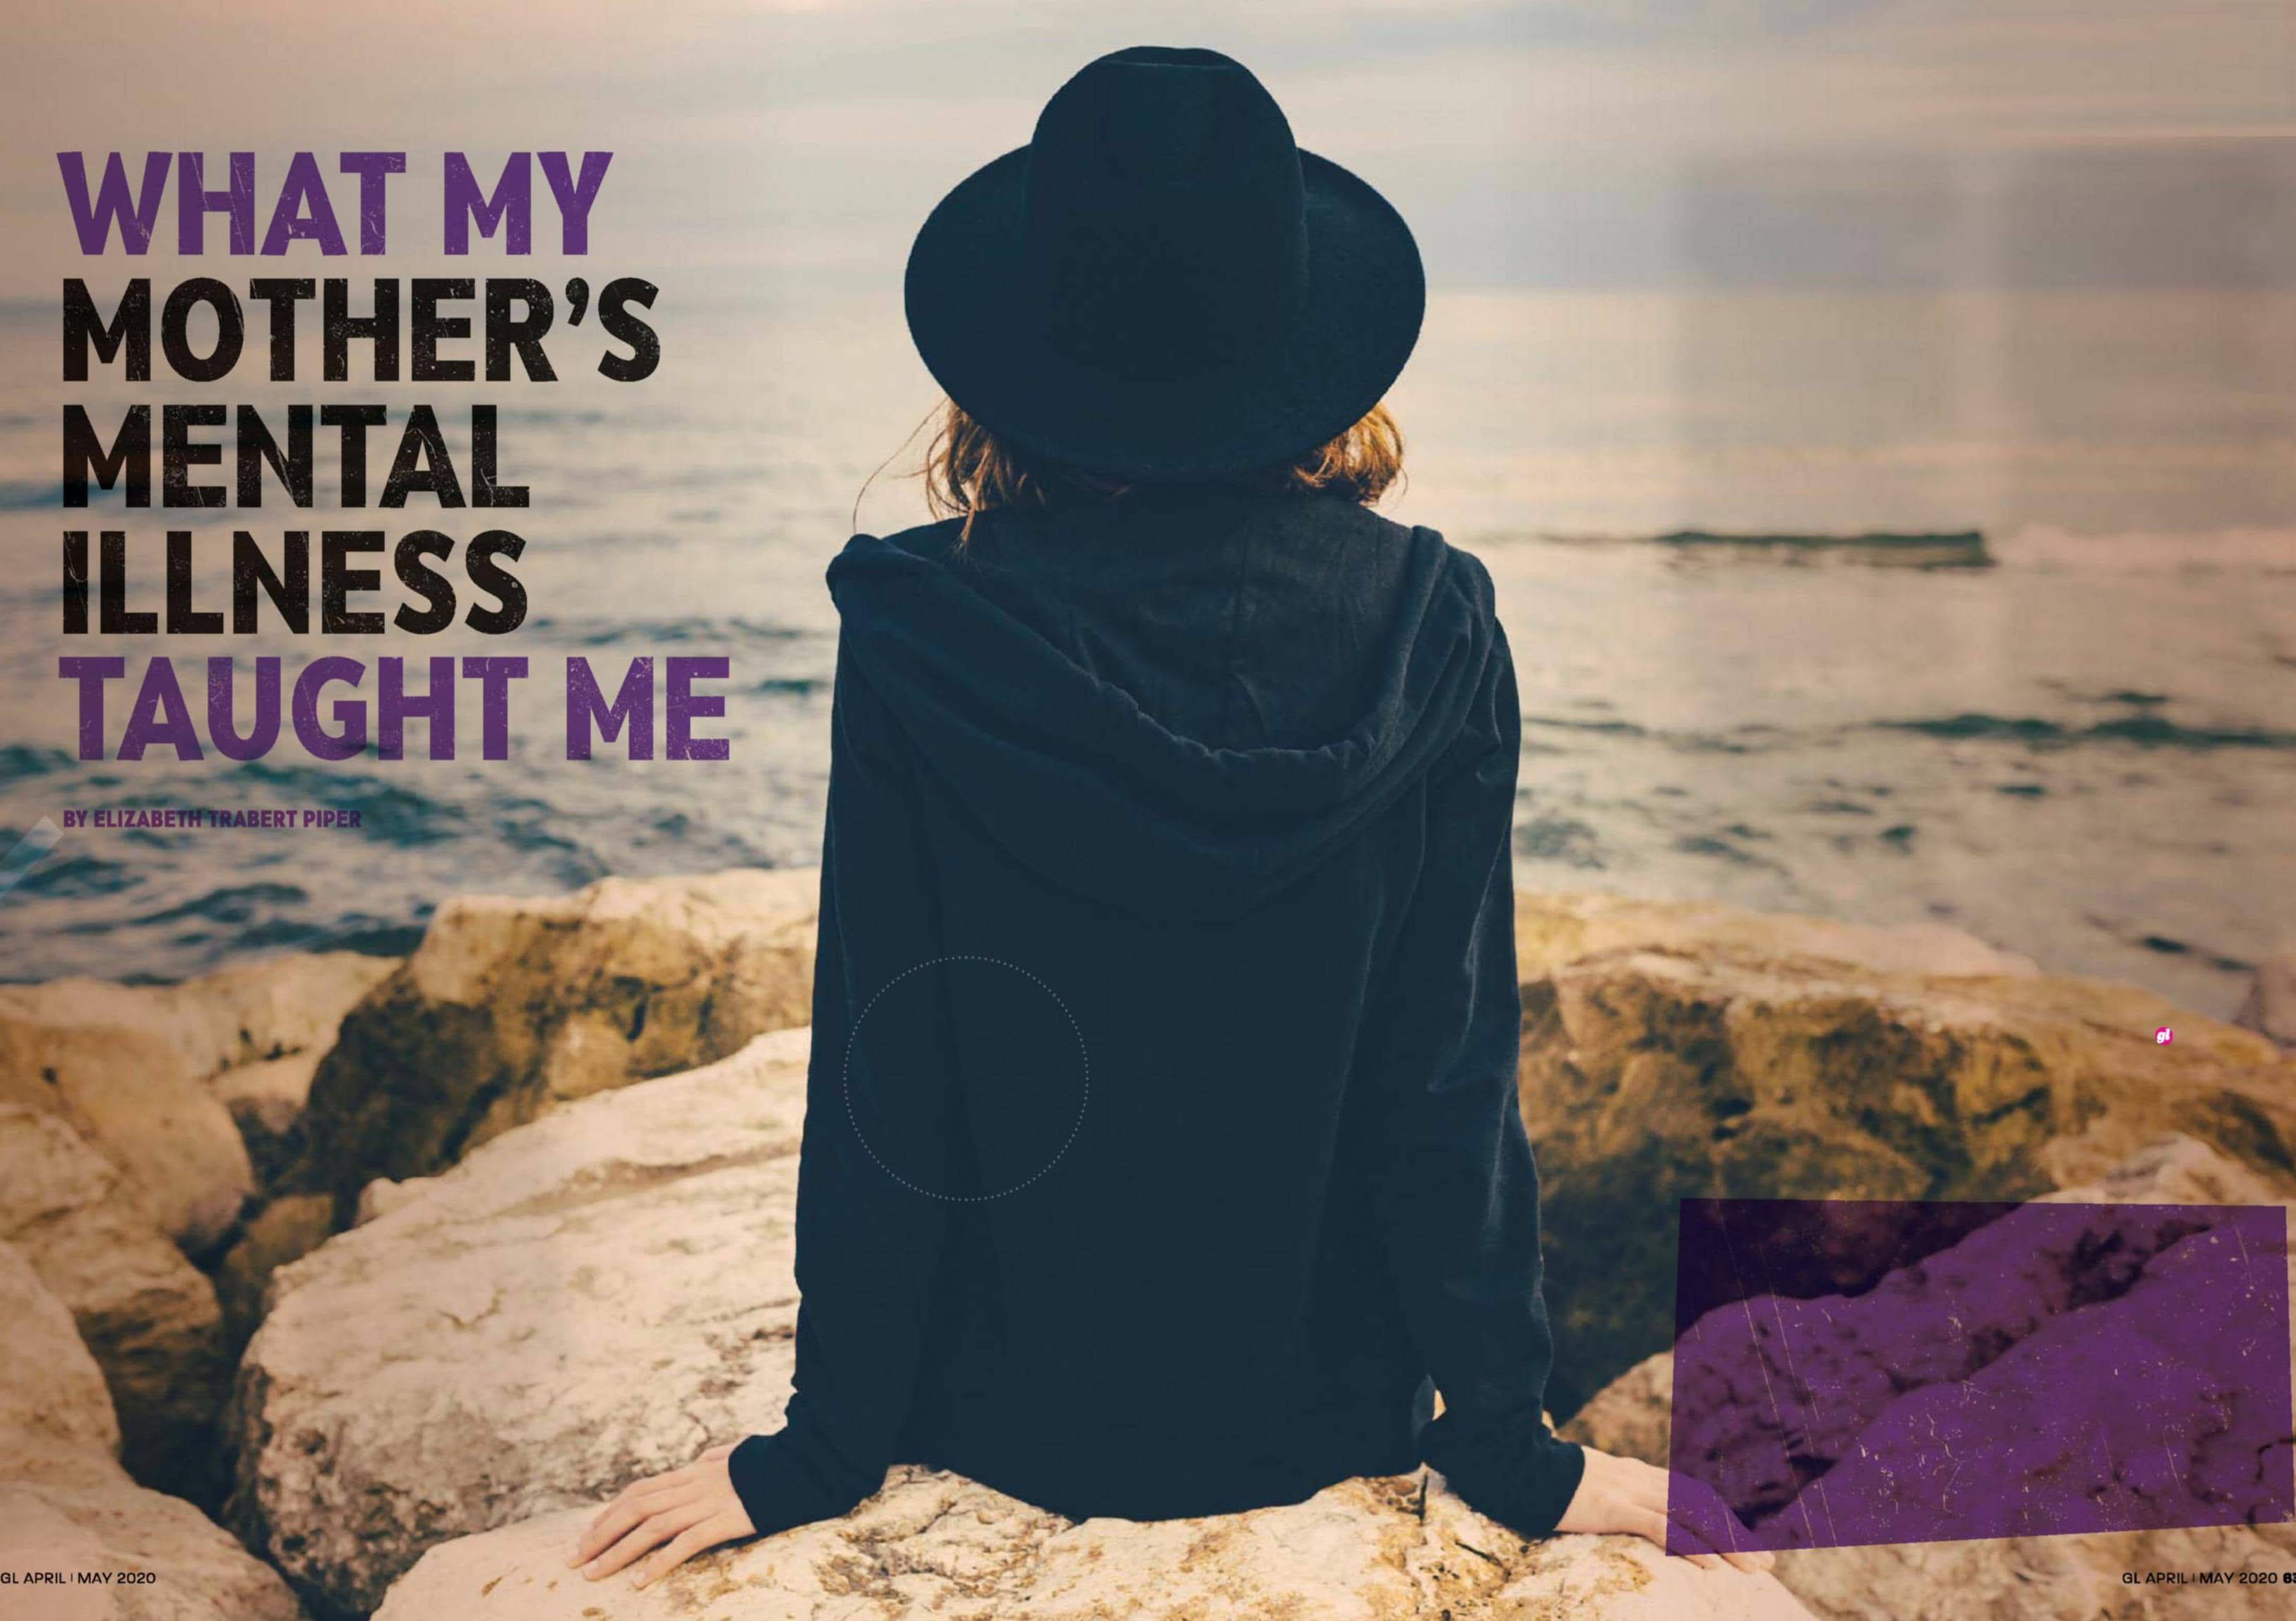 Whay My Mother's Mental Illness Taught Me